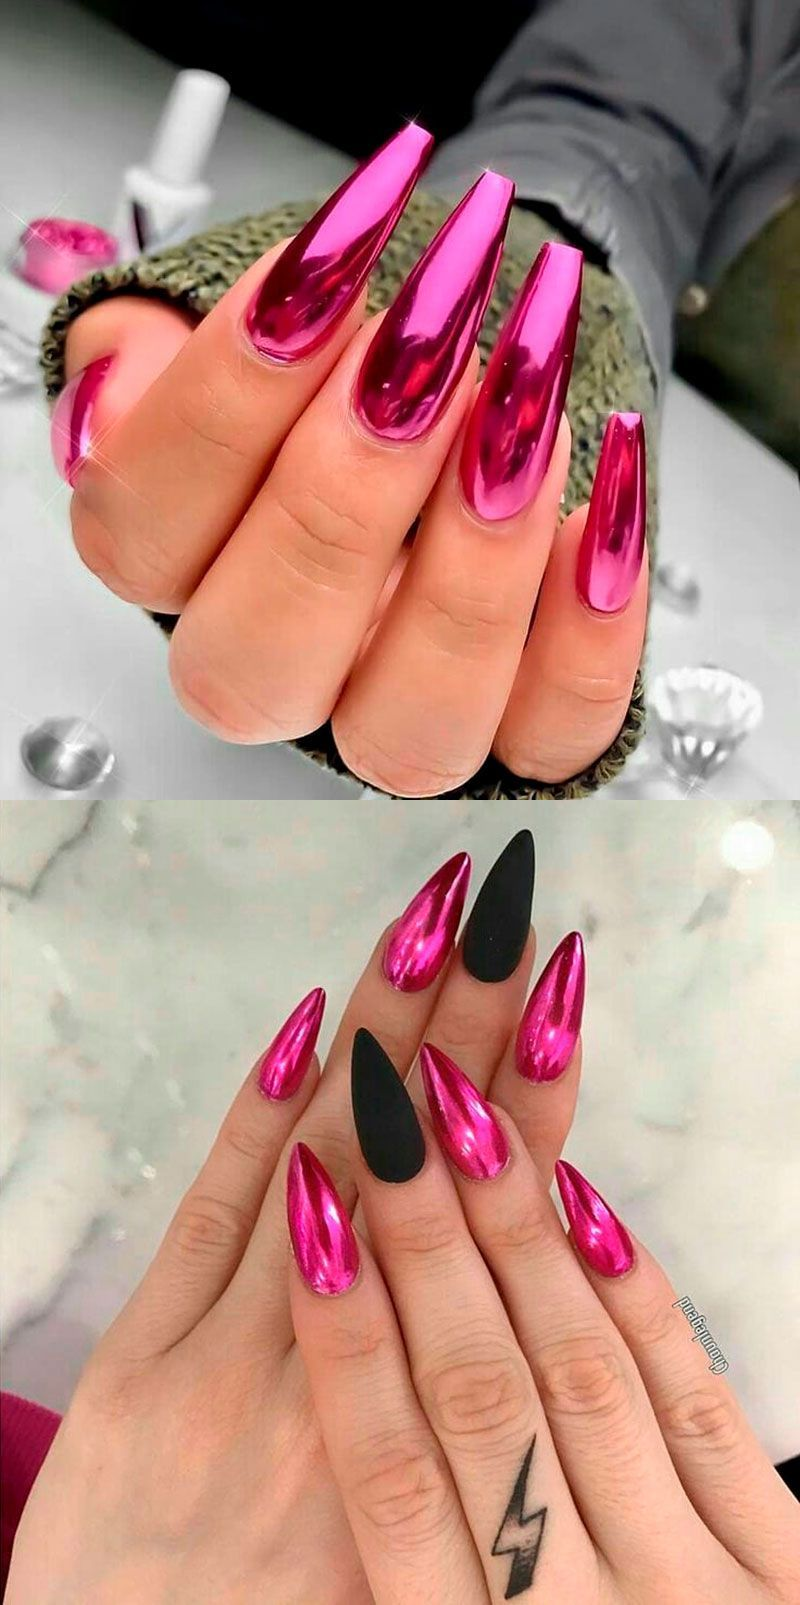 The Best Chrome Nail Ideas To Copy In 2020 Pink Chrome Nails Pink Acrylic Nails Pink Black Nails